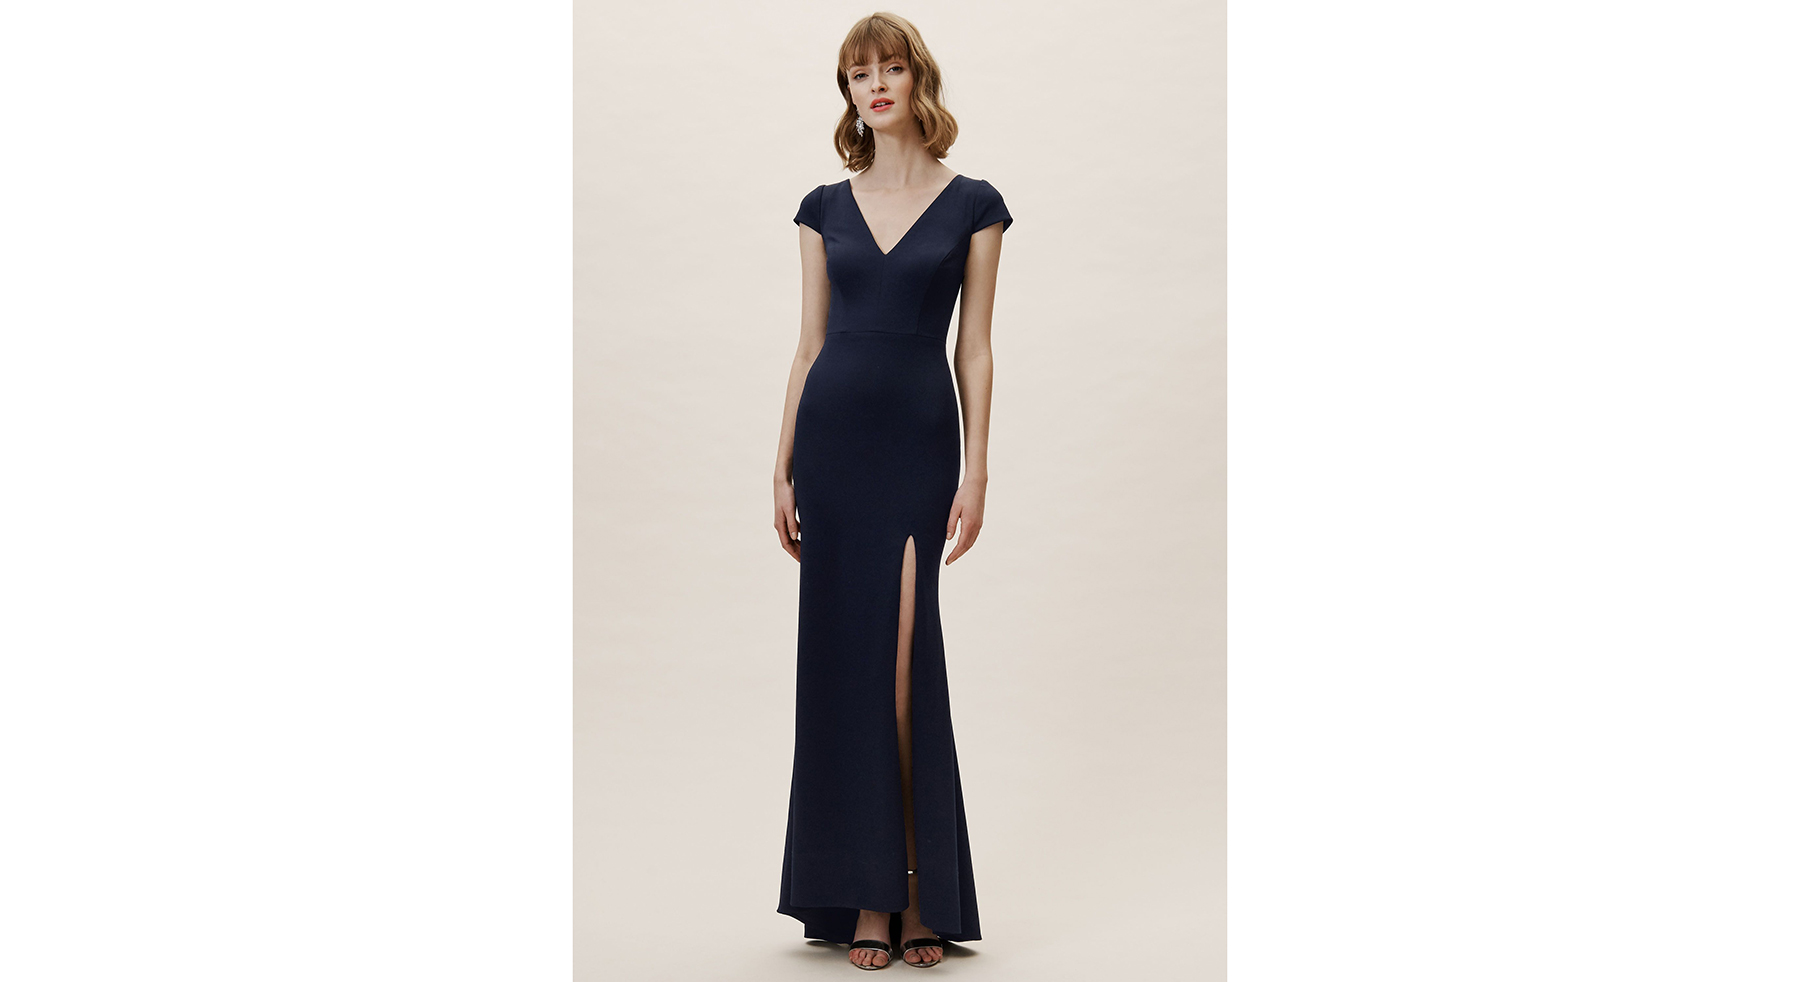 Where To Buy Bridesmaids Dresses Online